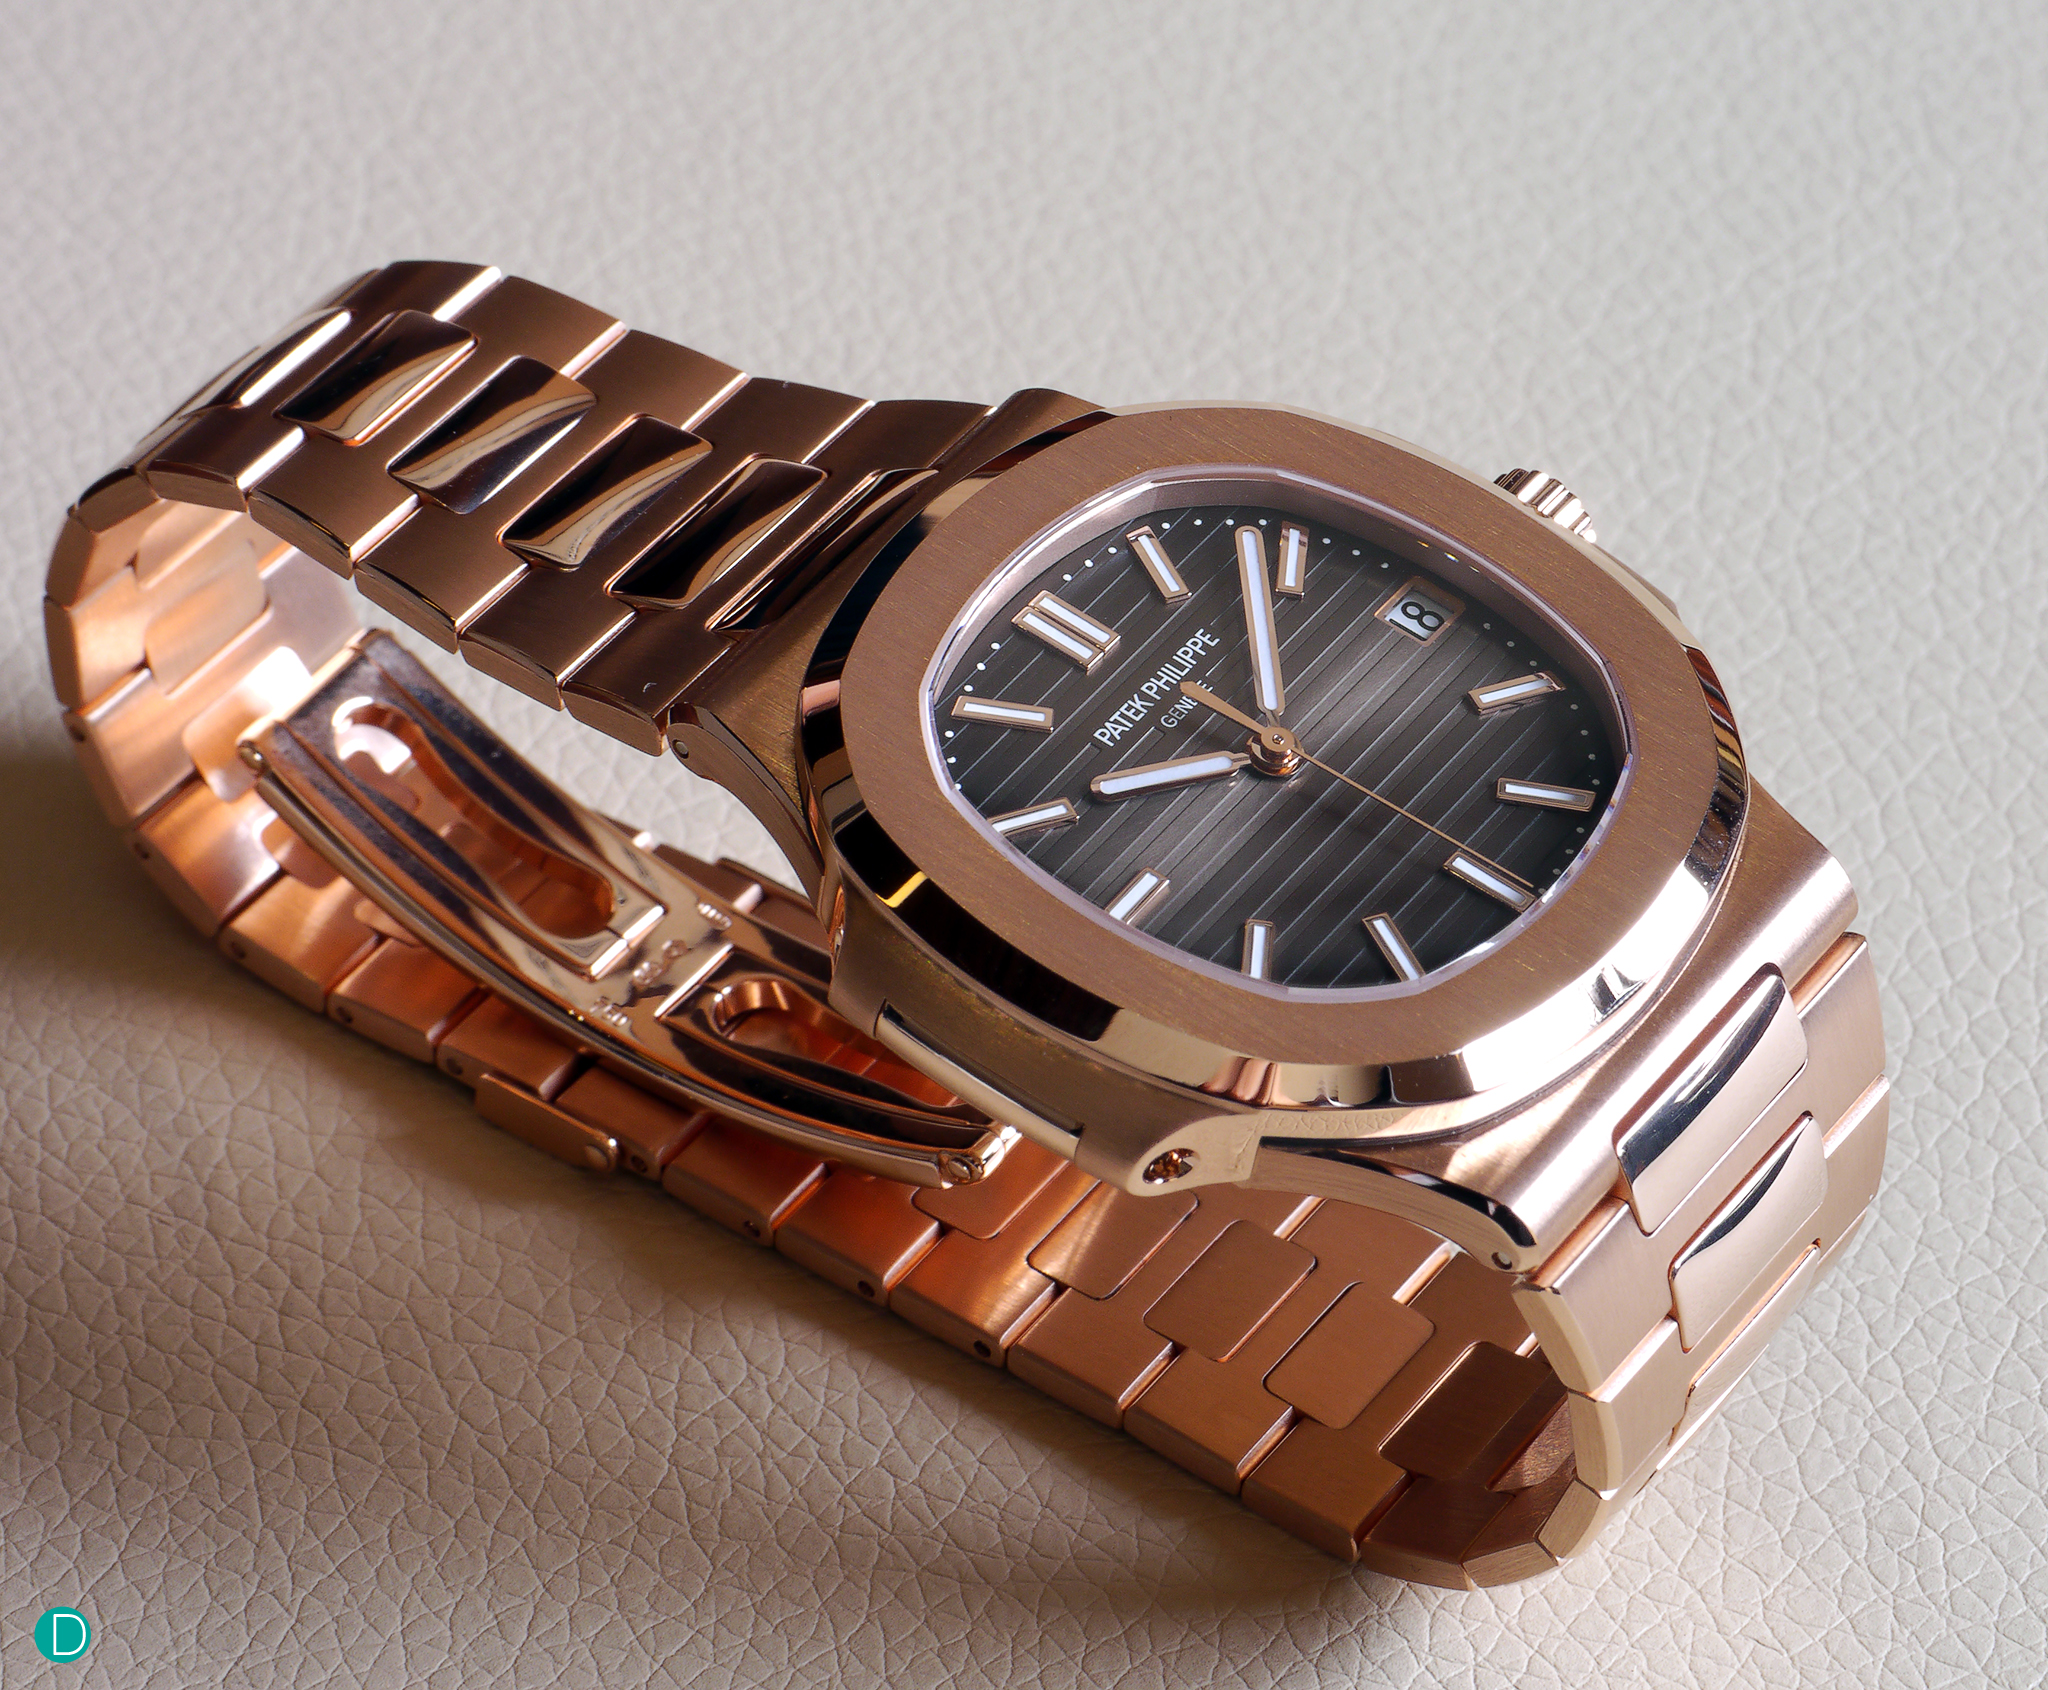 Review: Patek Philippe 5711 Nautilus Rose Gold